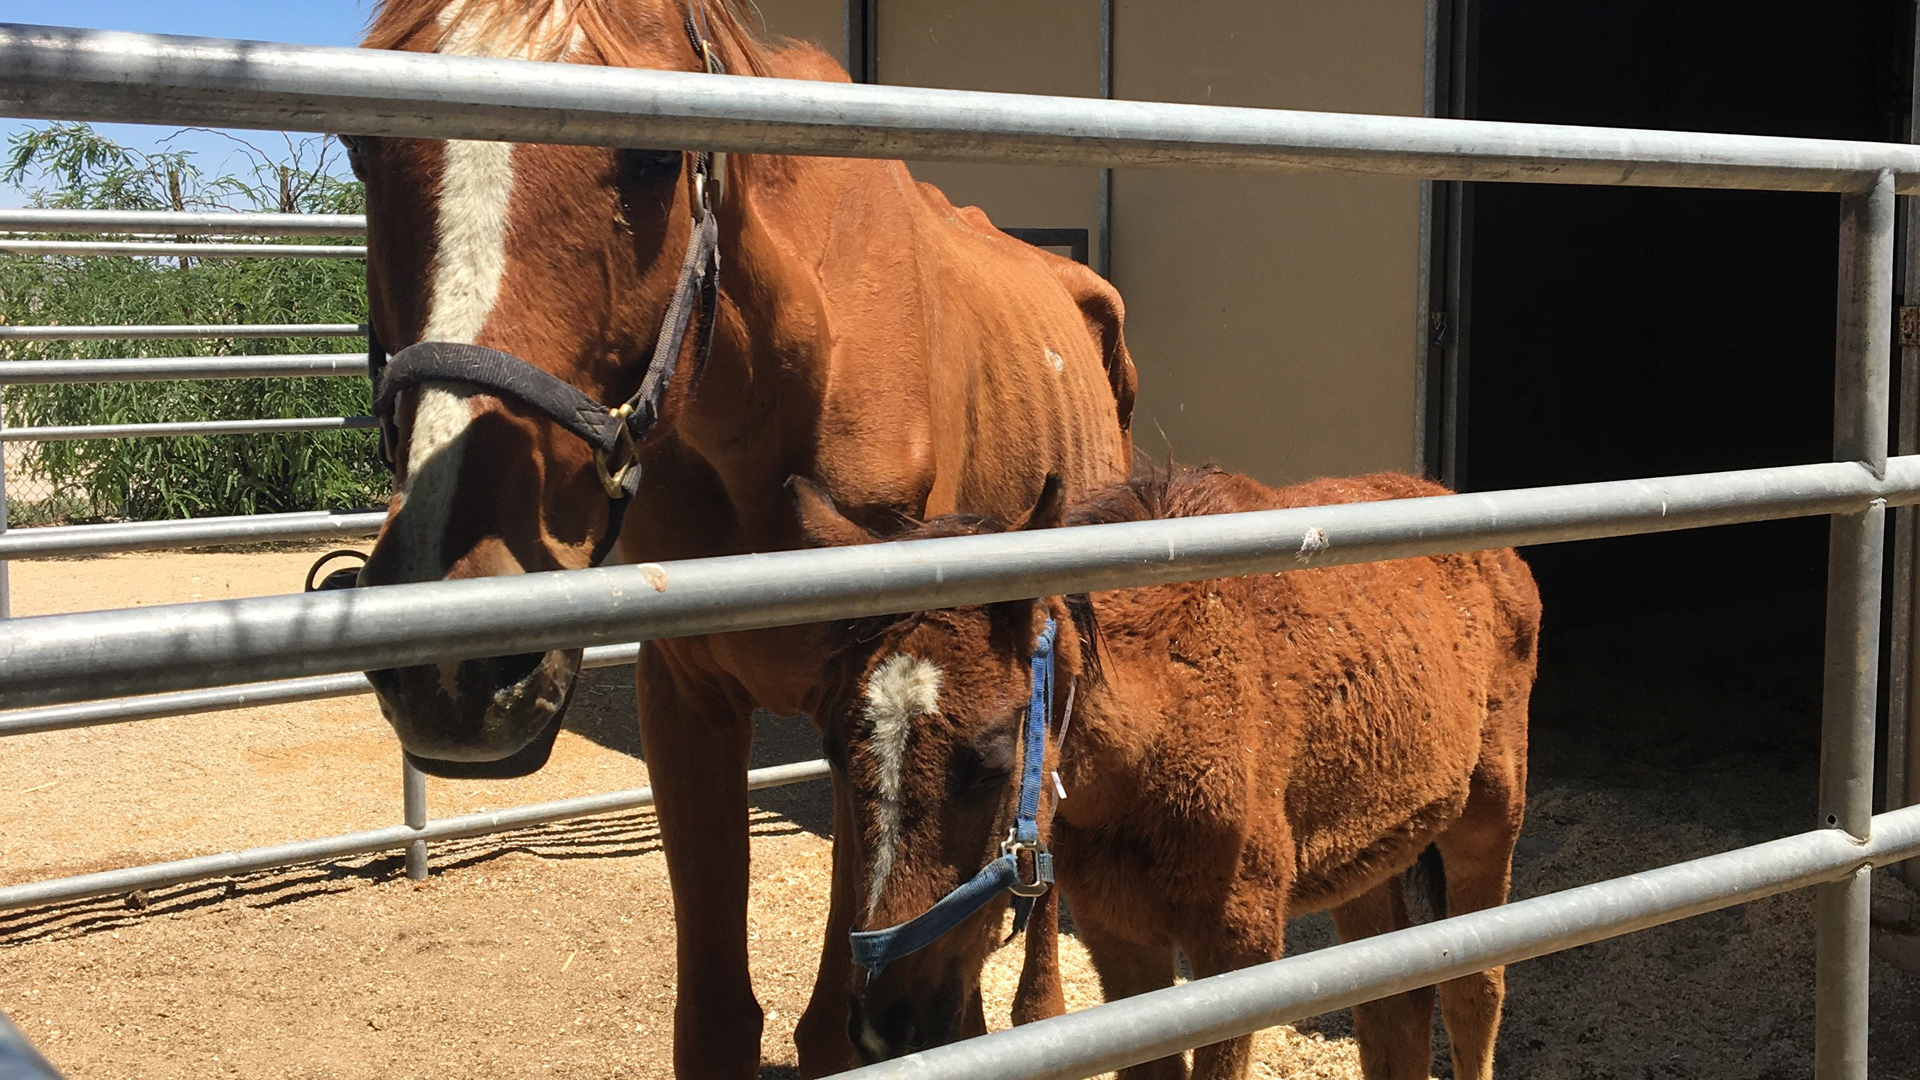 The Los Angeles County Department of Animal Care and Control provided this image of horses rescued in Lancaster on June 20, 2018.